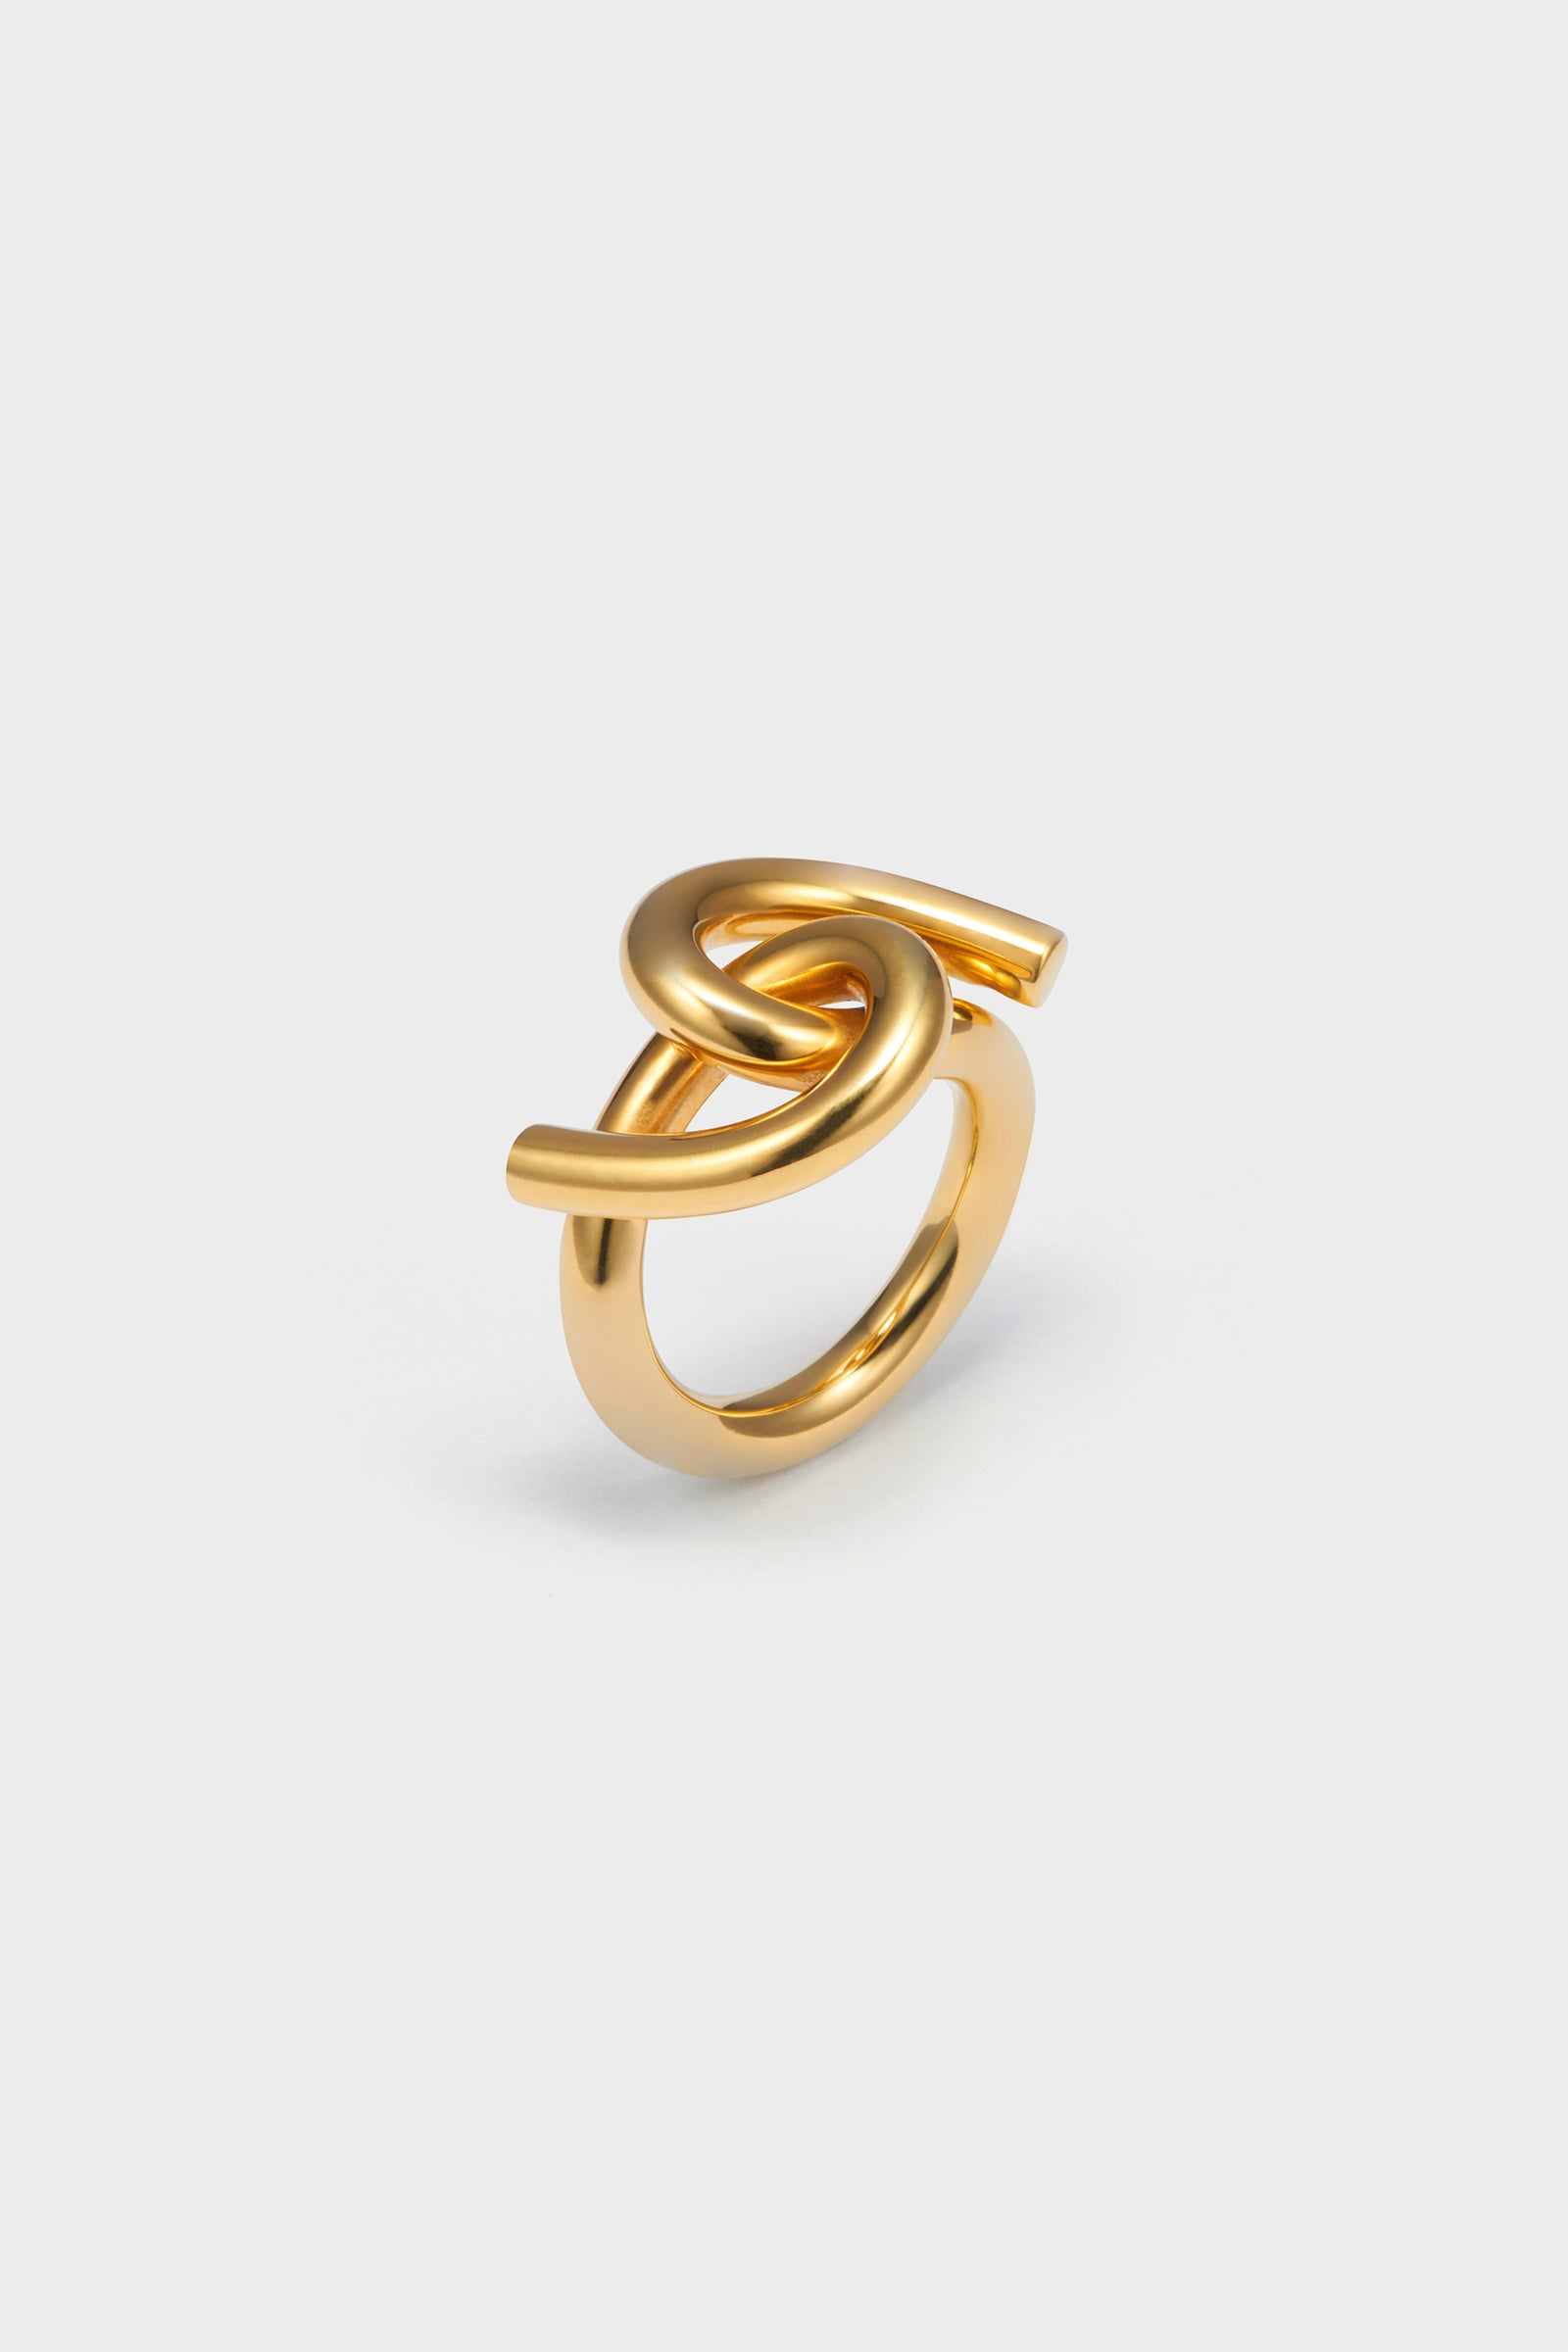 TORSION RING (GOLD)